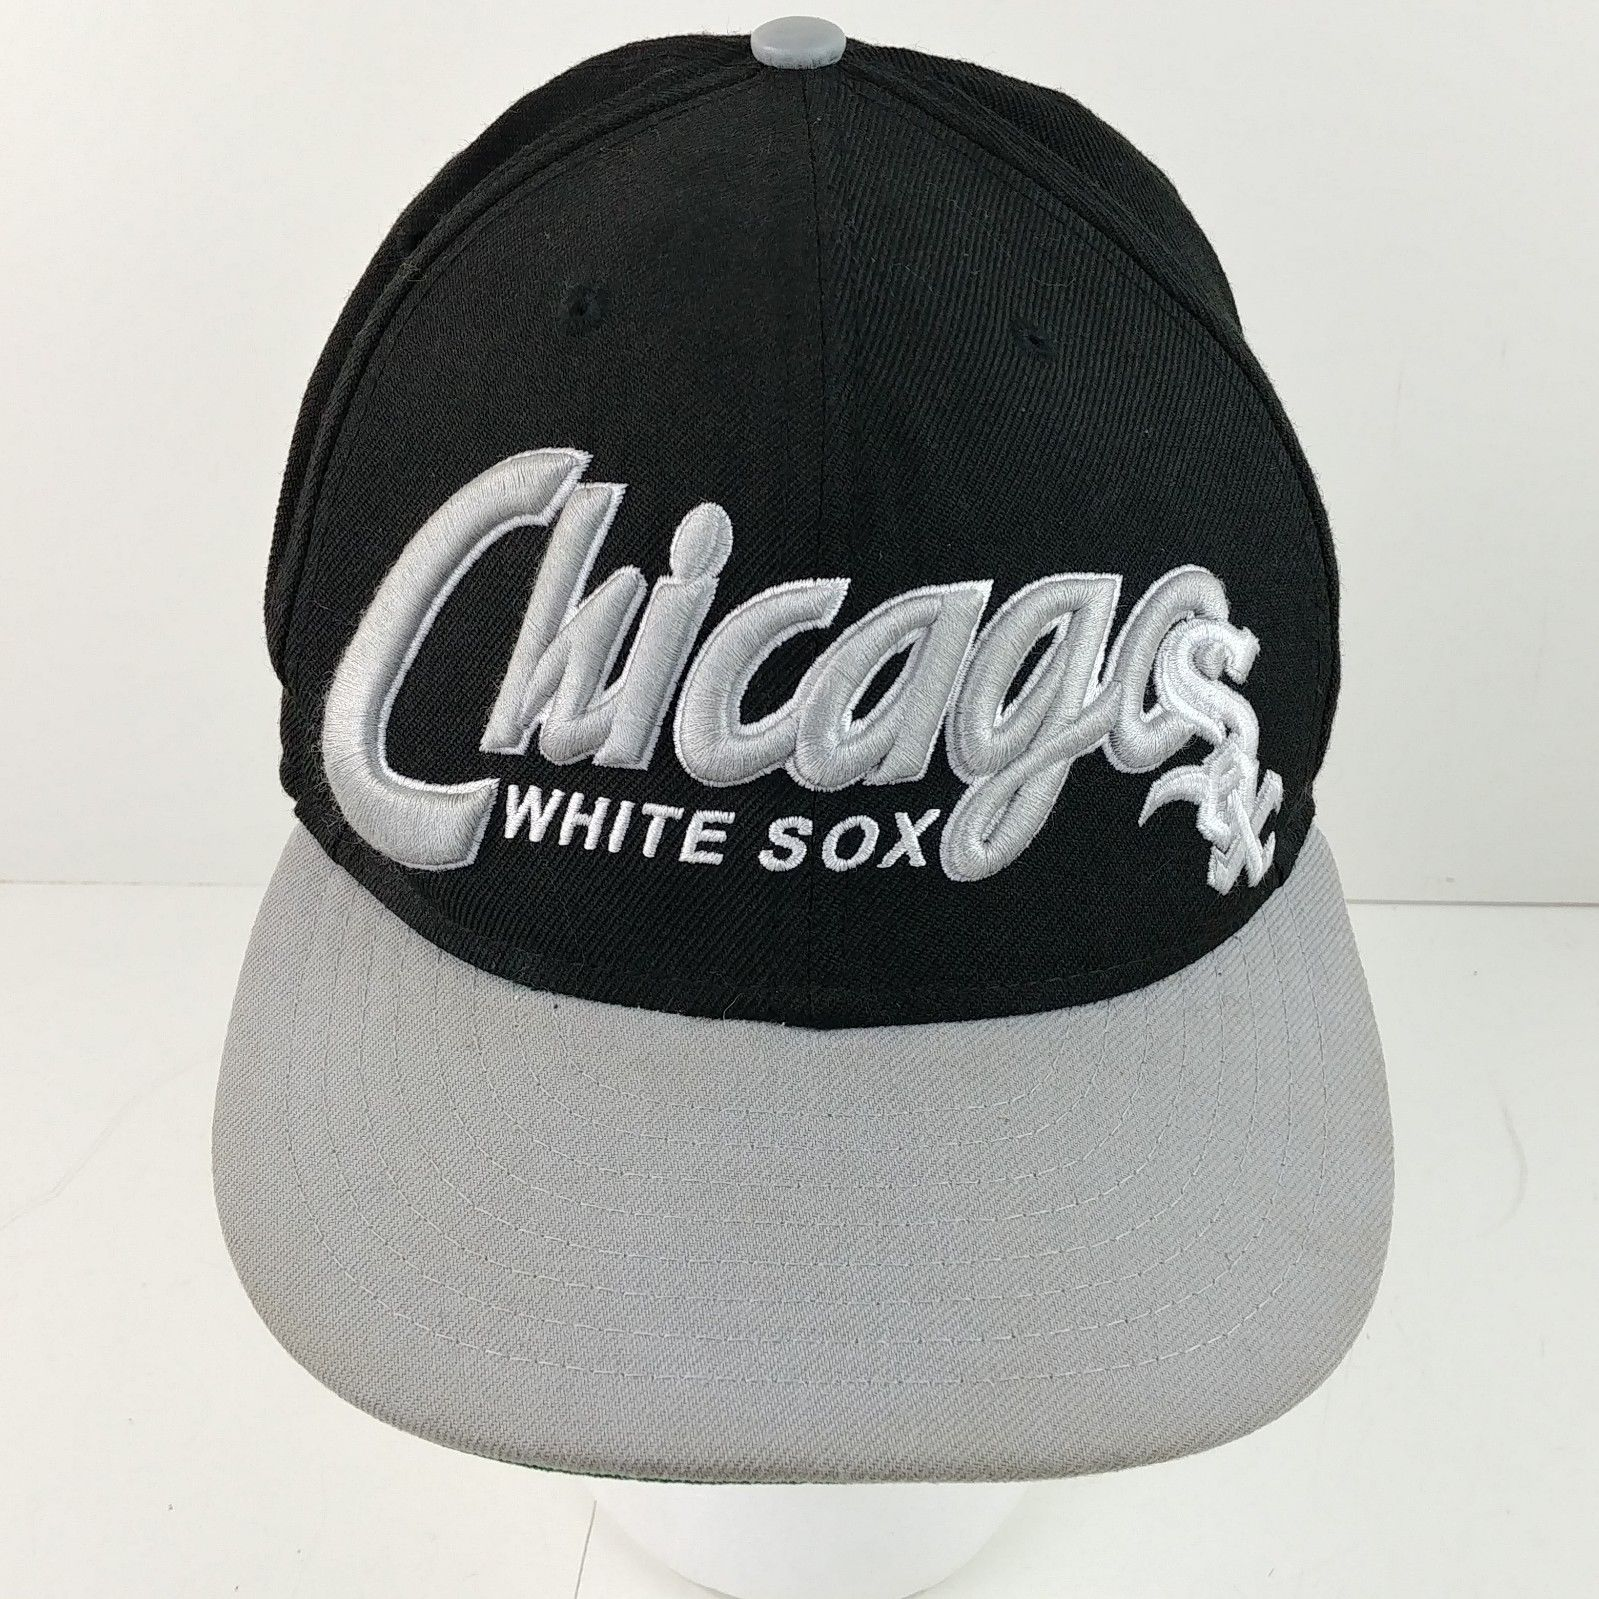 055b6e744 Chicago White Sox 9Fifty New Era Black Baseball Cap Hat Snapback Trucker  -#11